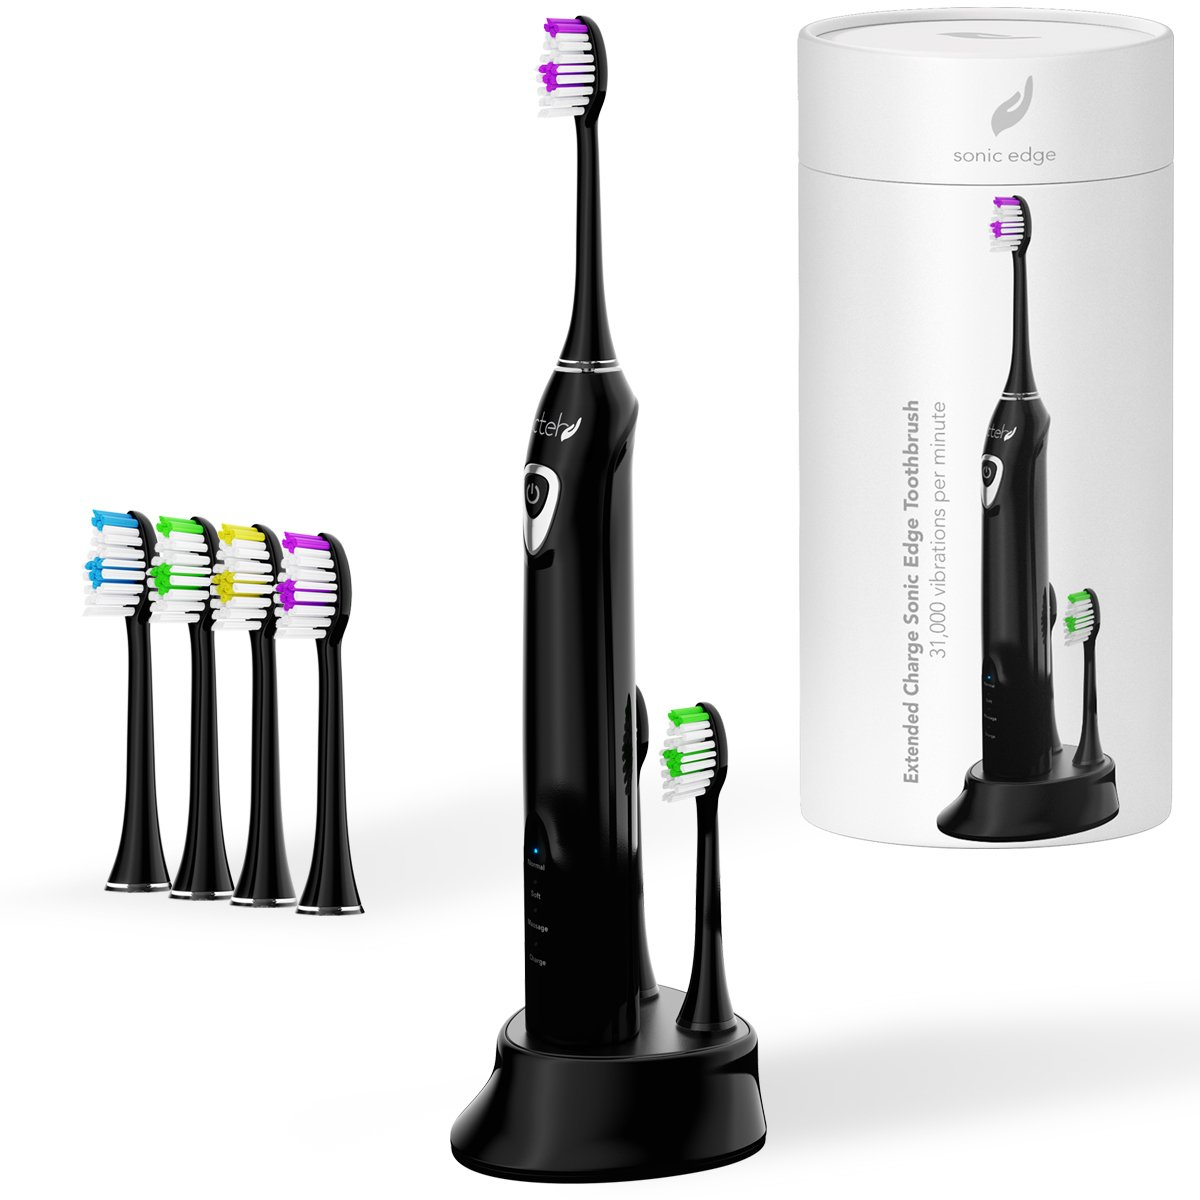 Amazon.com: Electric Toothbrush Sonic Edge with Extended Battery ...